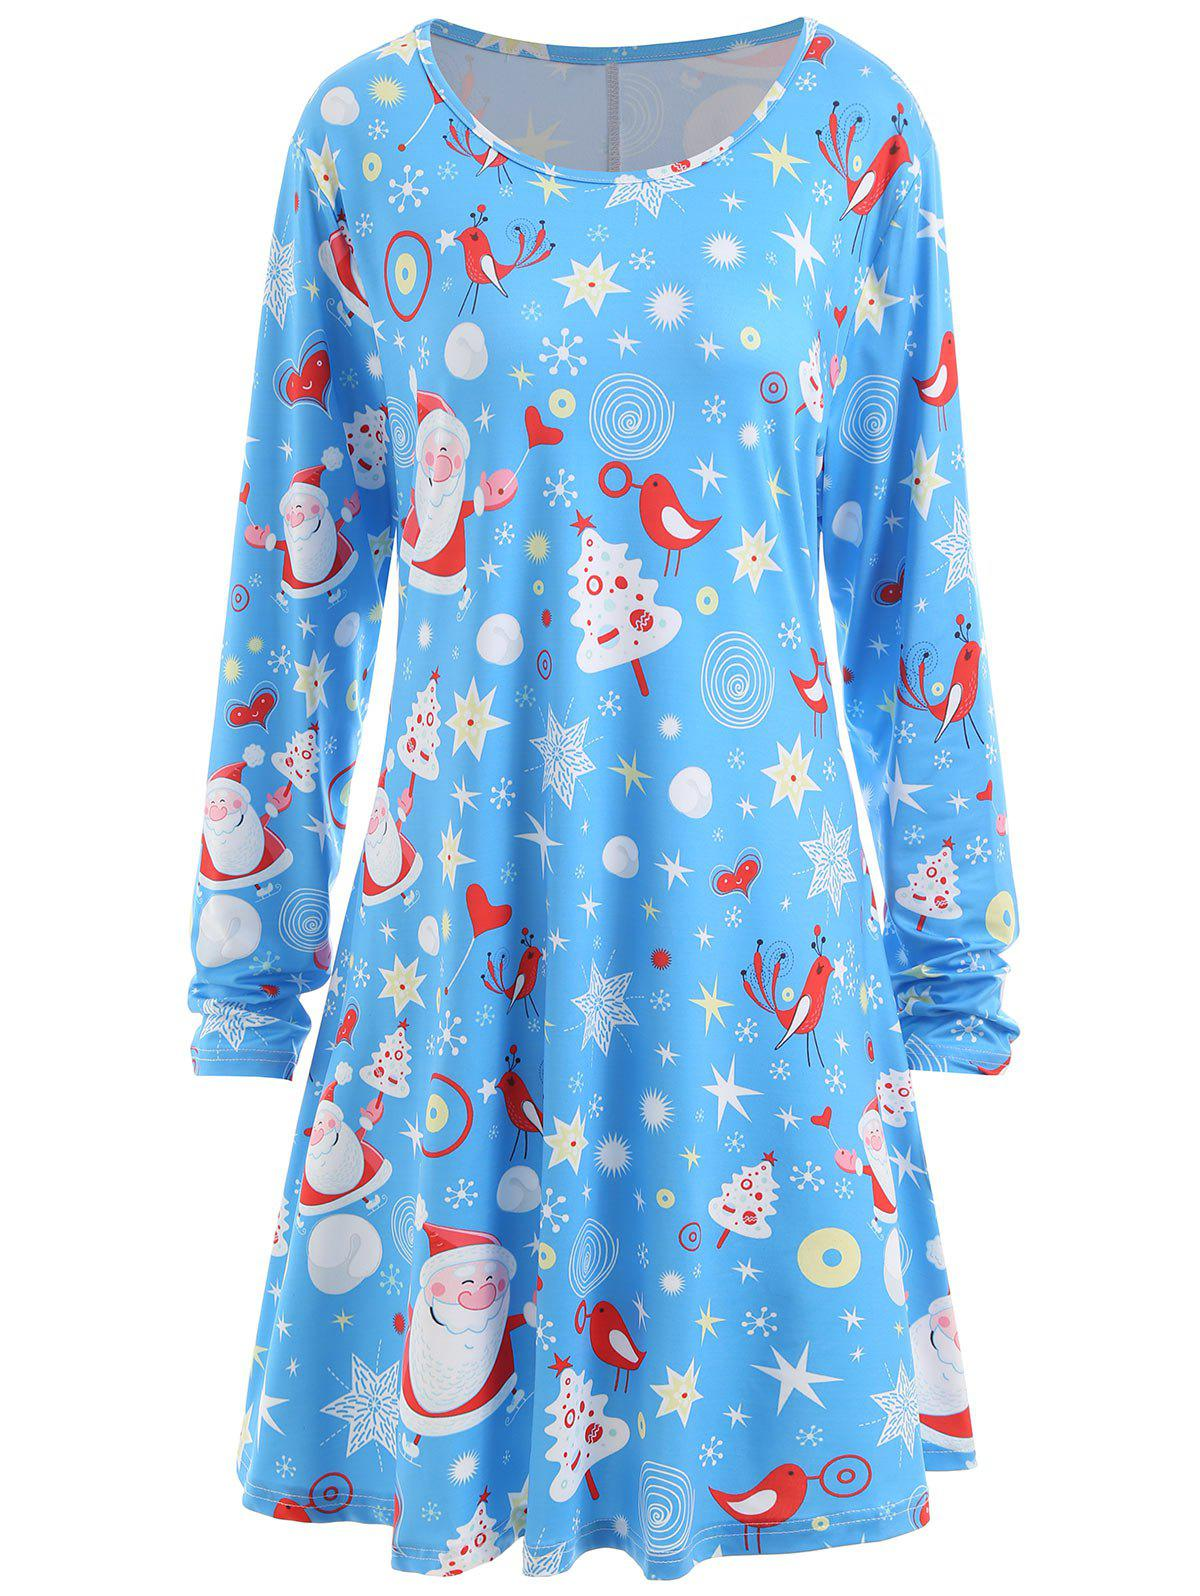 Christmas Santa Claus Star Heart Plus Size Tunic DressWOMEN<br><br>Size: 3XL; Color: AZURE; Style: Casual; Material: Polyester; Silhouette: A-Line; Dresses Length: Knee-Length; Neckline: Round Collar; Sleeve Length: Long Sleeves; Pattern Type: Print; With Belt: No; Season: Fall,Spring,Winter; Weight: 0.3500kg; Package Contents: 1 x Dress;